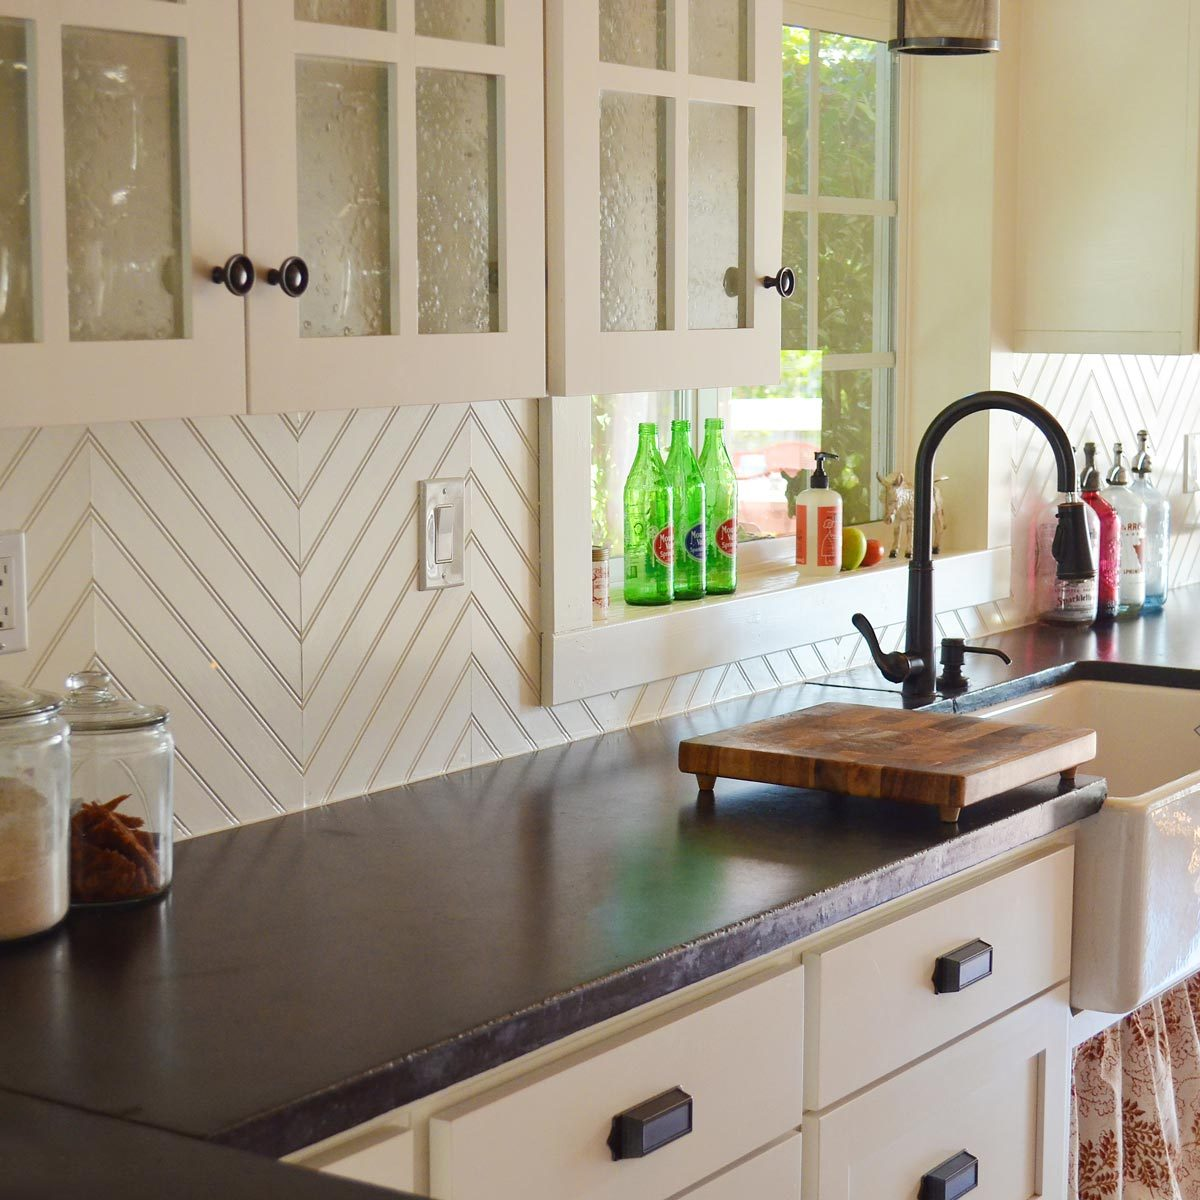 - The 30 Backsplash Ideas Your Kitchen Can't Live Without Family